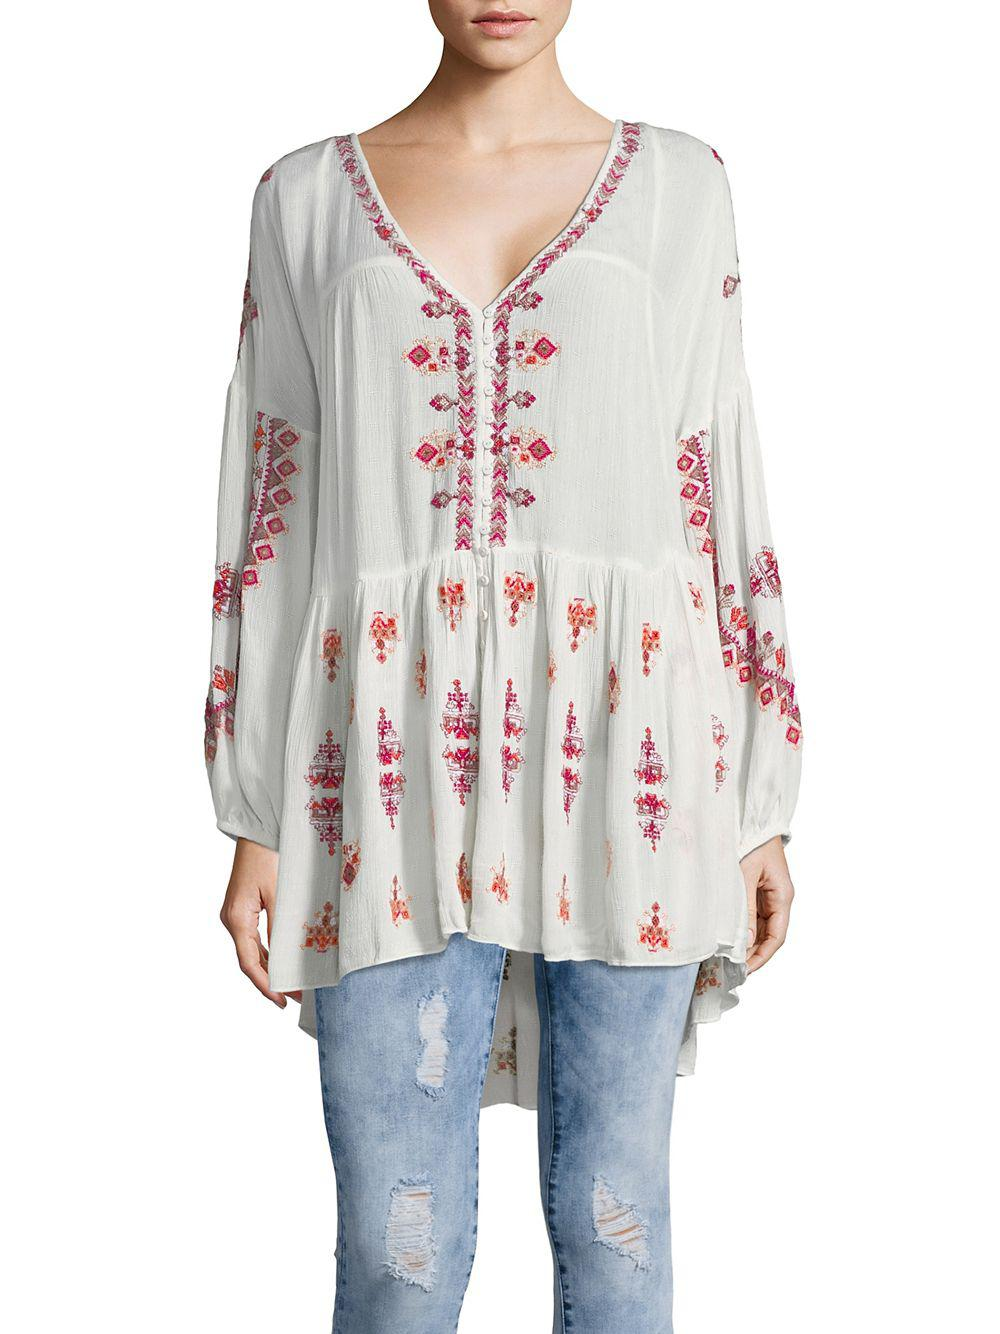 779528bfb1c Lyst - Free People The Arianna Embroidered Tunic in White